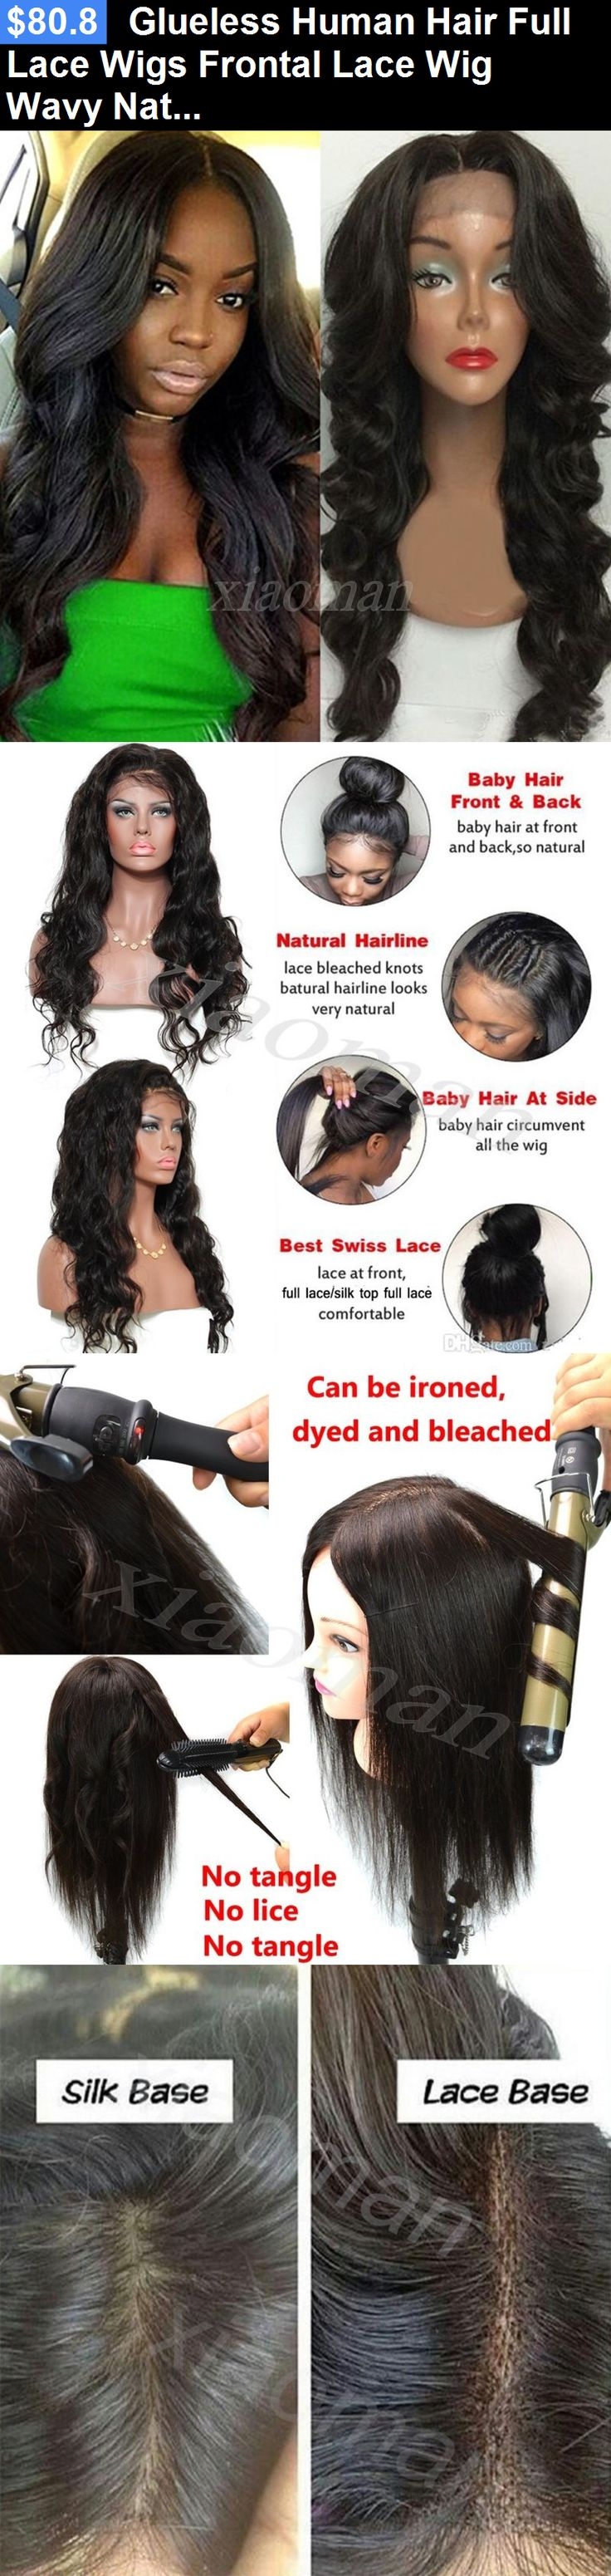 Wigs and Hairpieces: Glueless Human Hair Full Lace Wigs Frontal Lace Wig Wavy Natural Straight Wig #X BUY IT NOW ONLY: $80.8